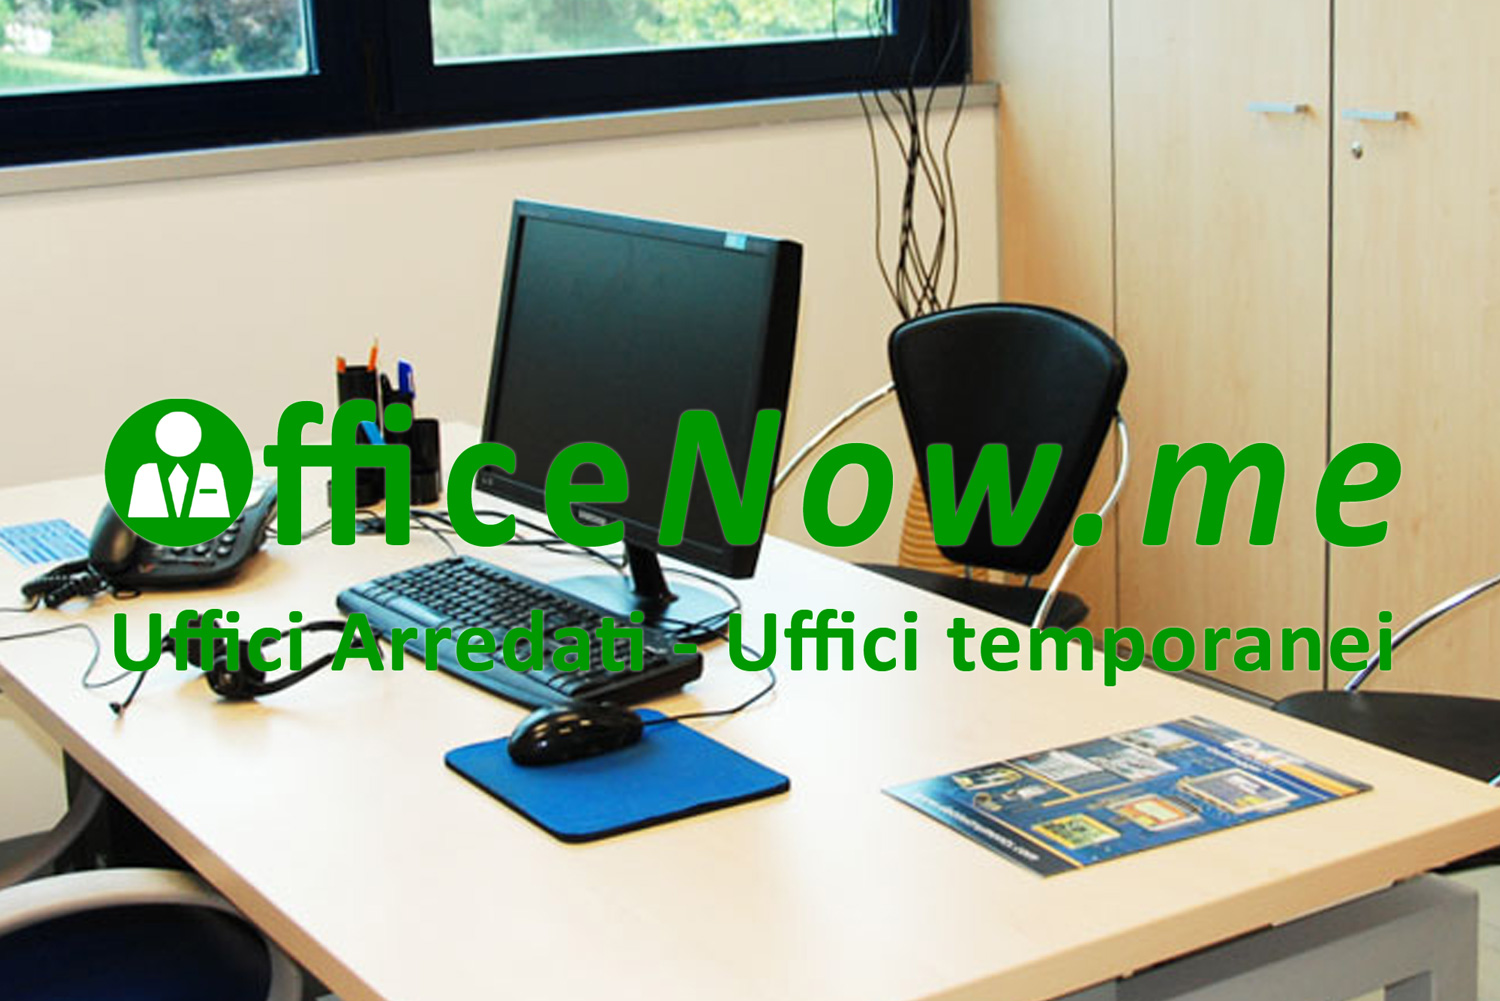 OfficeNow uffici Arredati, Affitto Ufficio, OfficeNow, business center, Malpensa, Cairate, Varese, Gallarate, Busto Arsizio